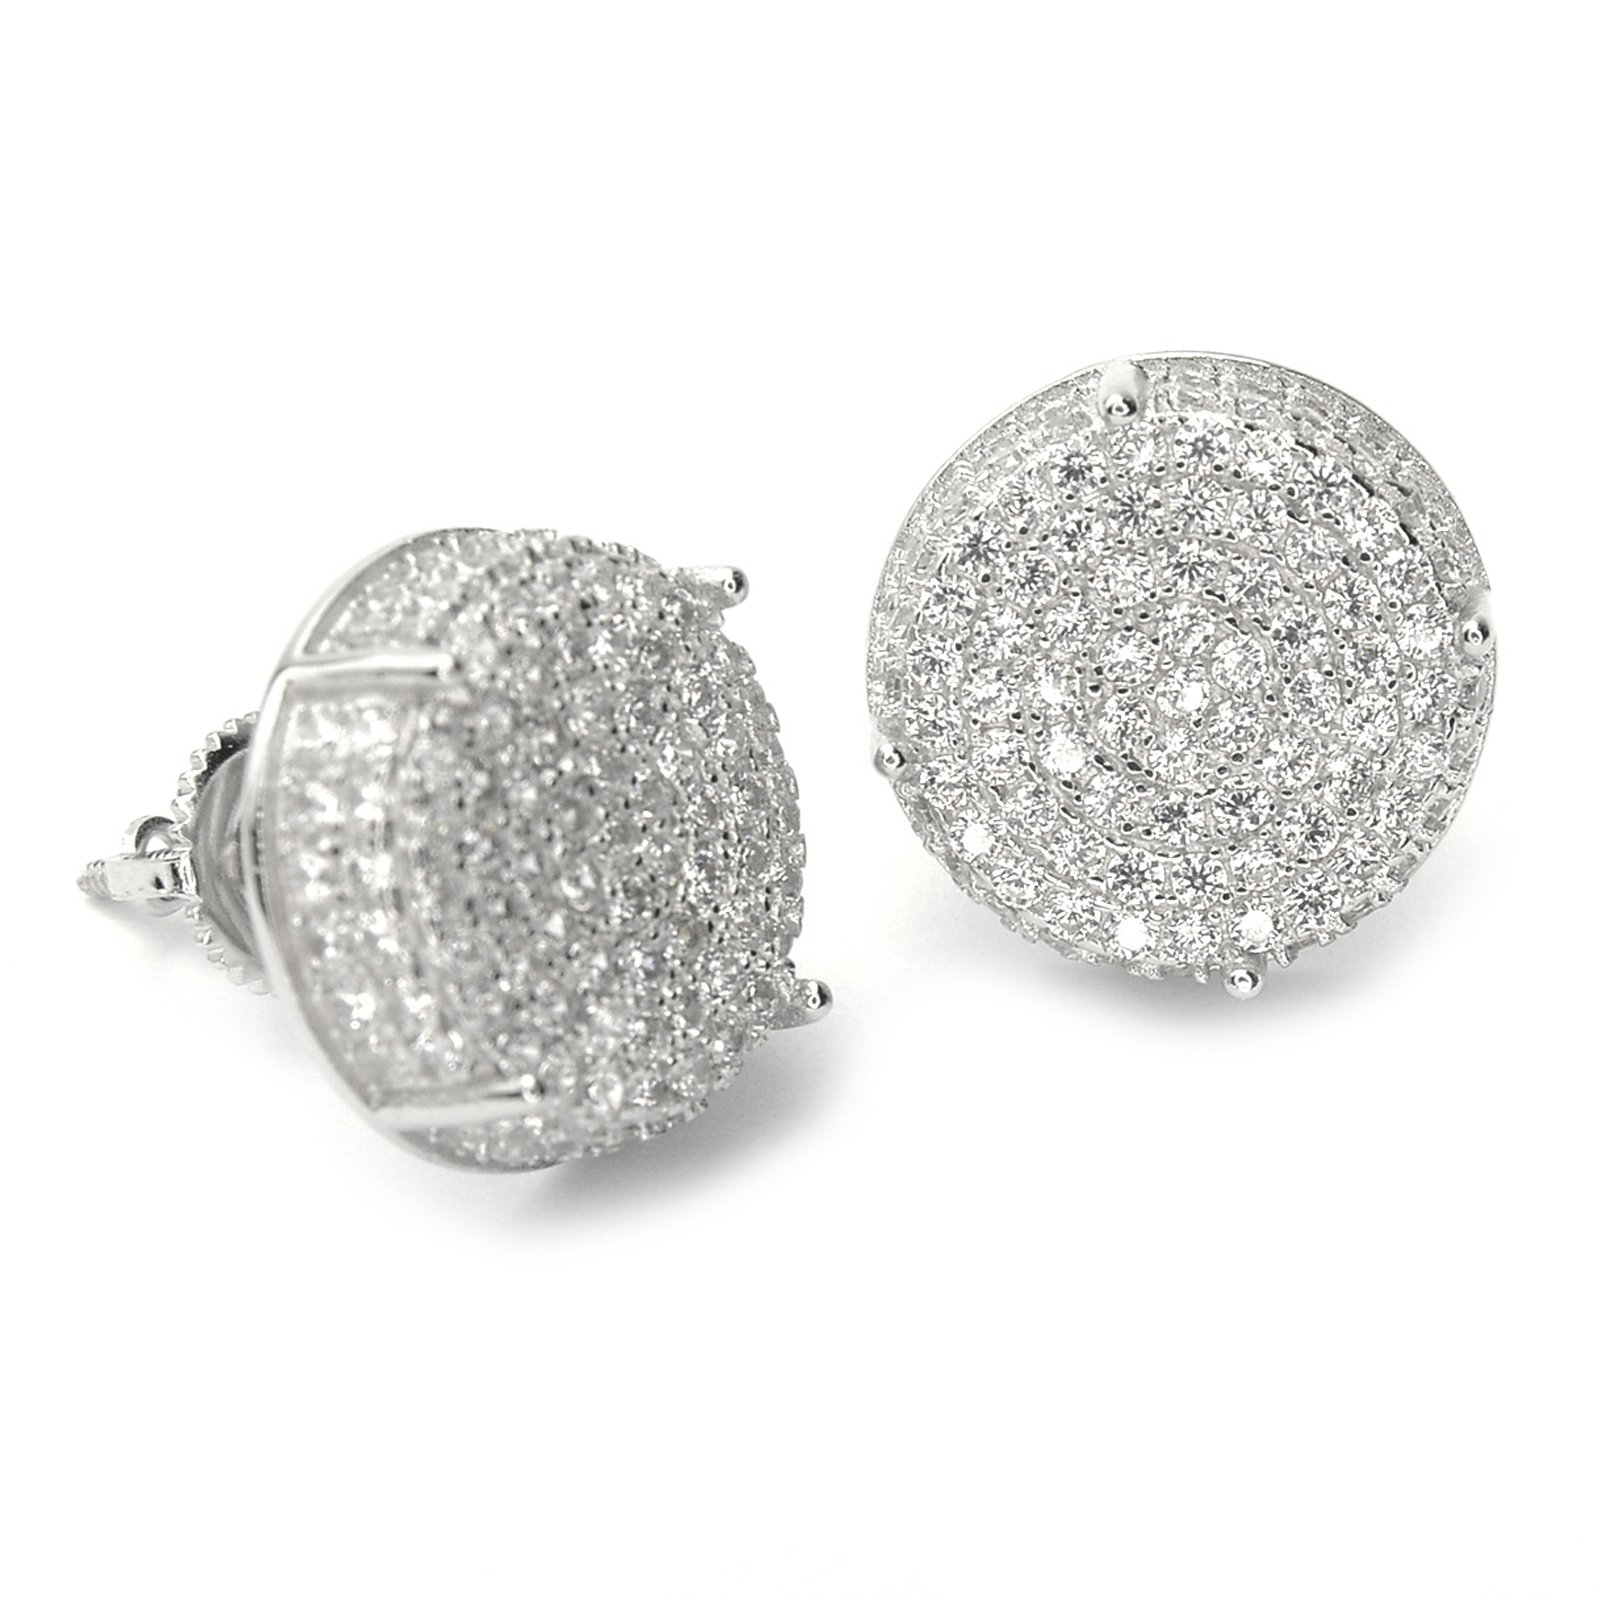 Men's Full Iced Out Cubic Zirconia Round Setting Screw Back Earring BE 11403 (Silver Plated)